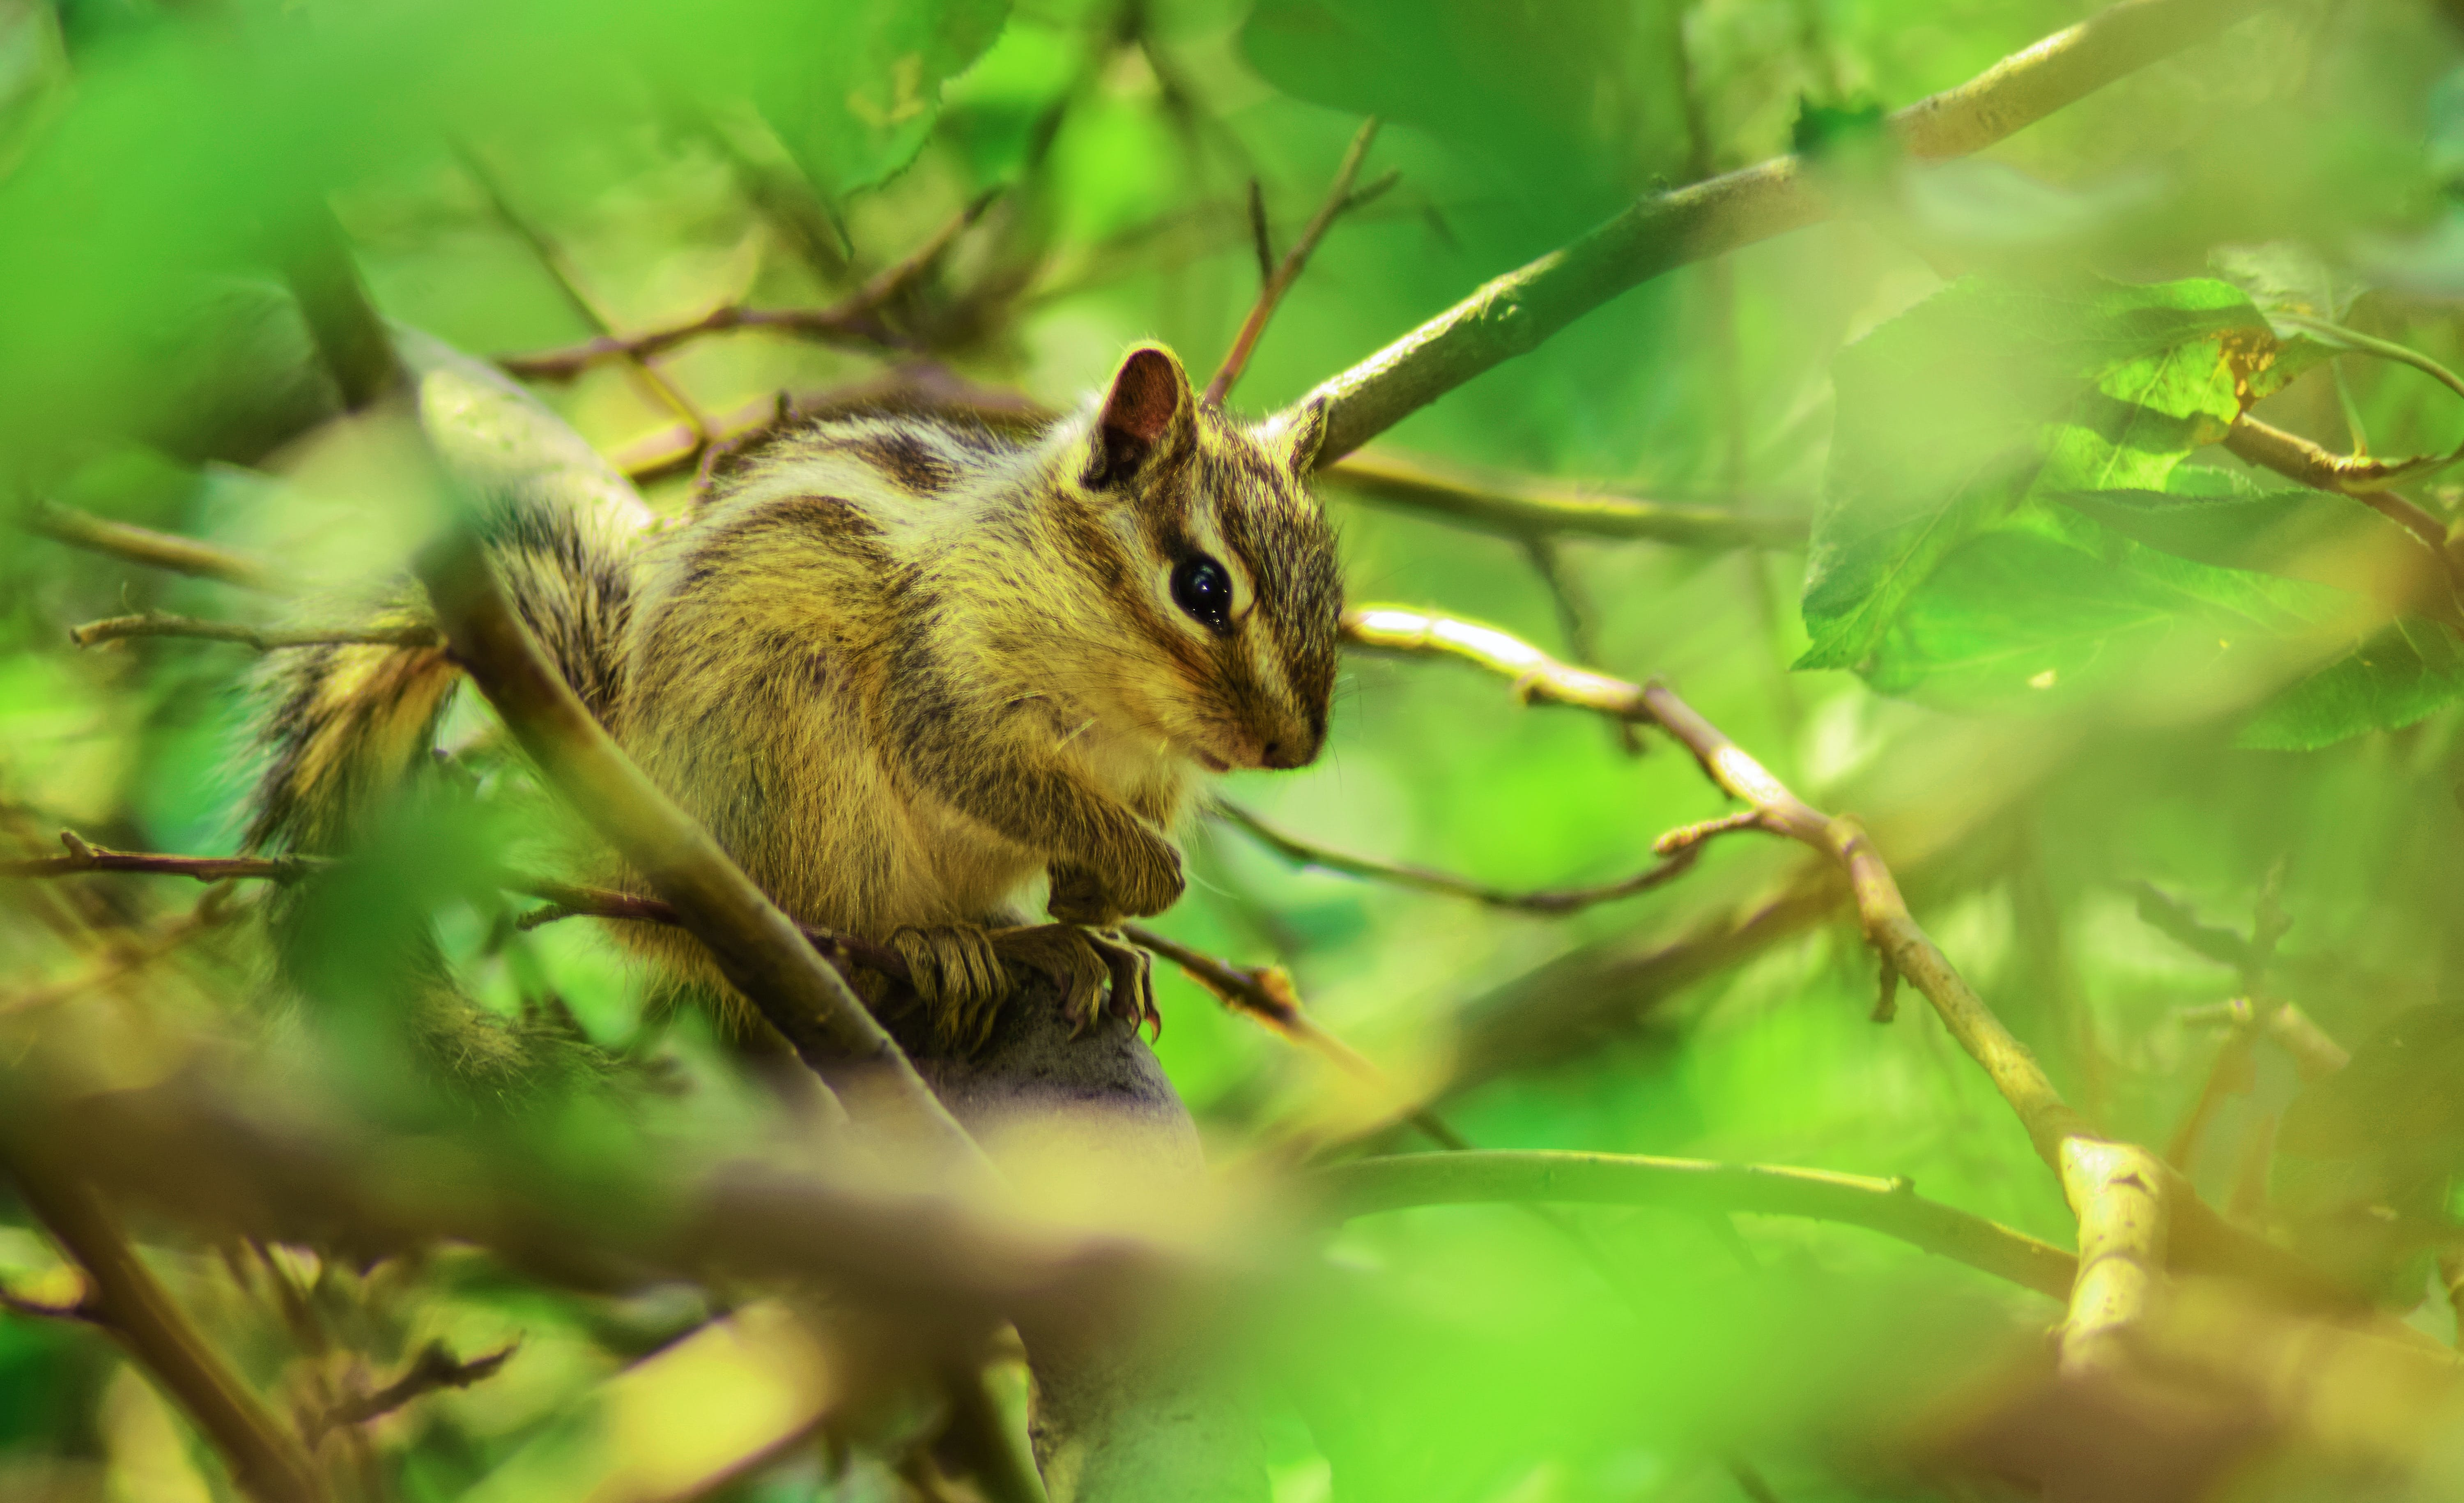 Brown Squirrel Perched on Tree Branch in Selective Focus Photography